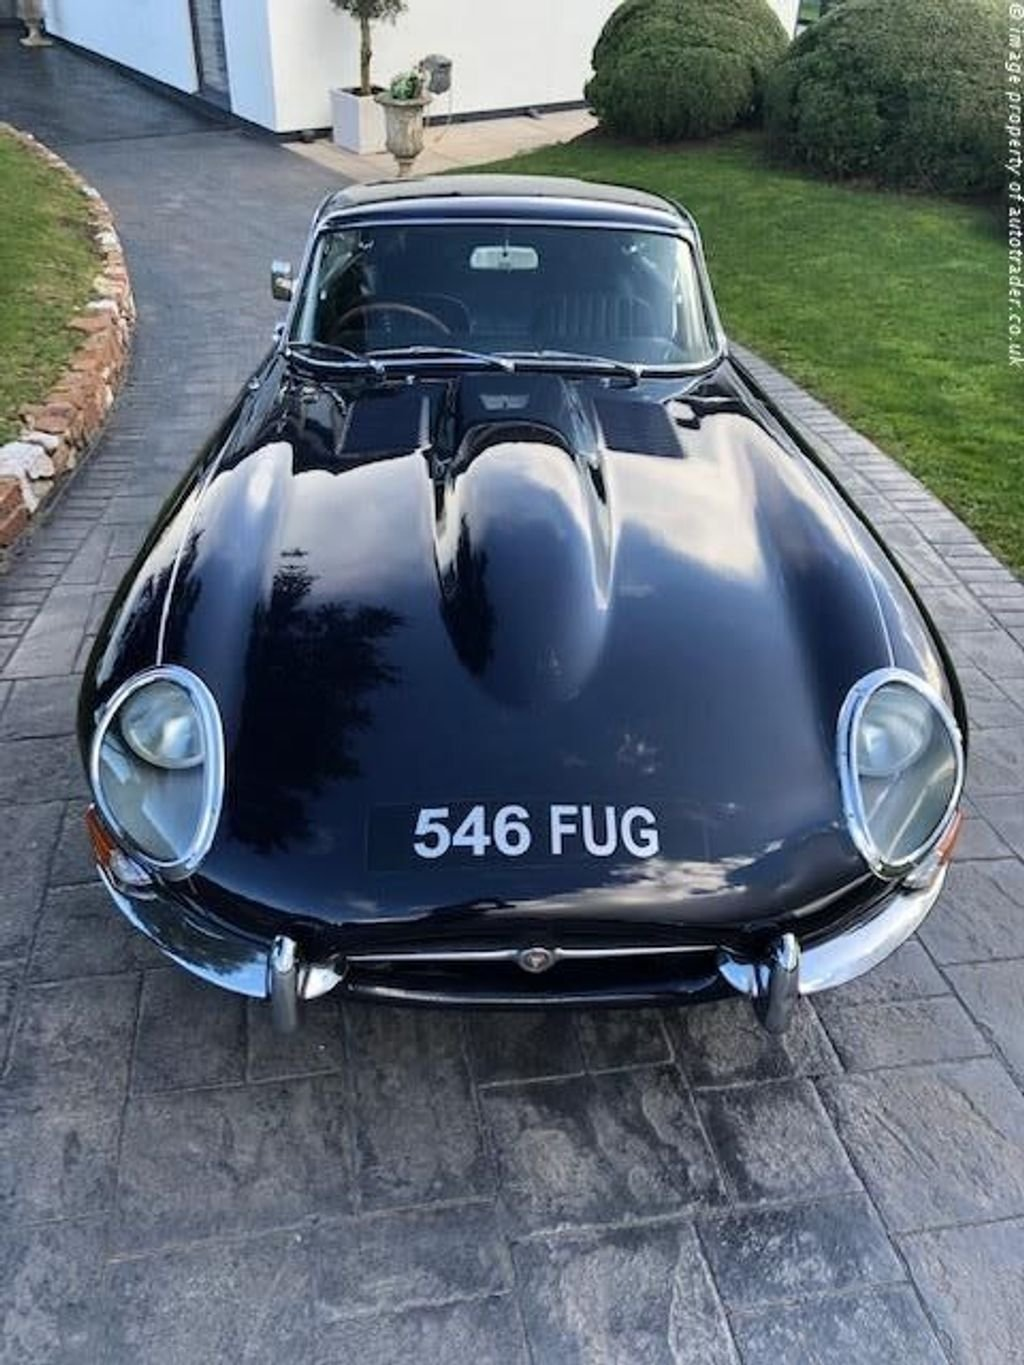 1966 Series 1 E-Type Jag 4.2 FHC For Sale (picture 6 of 6)